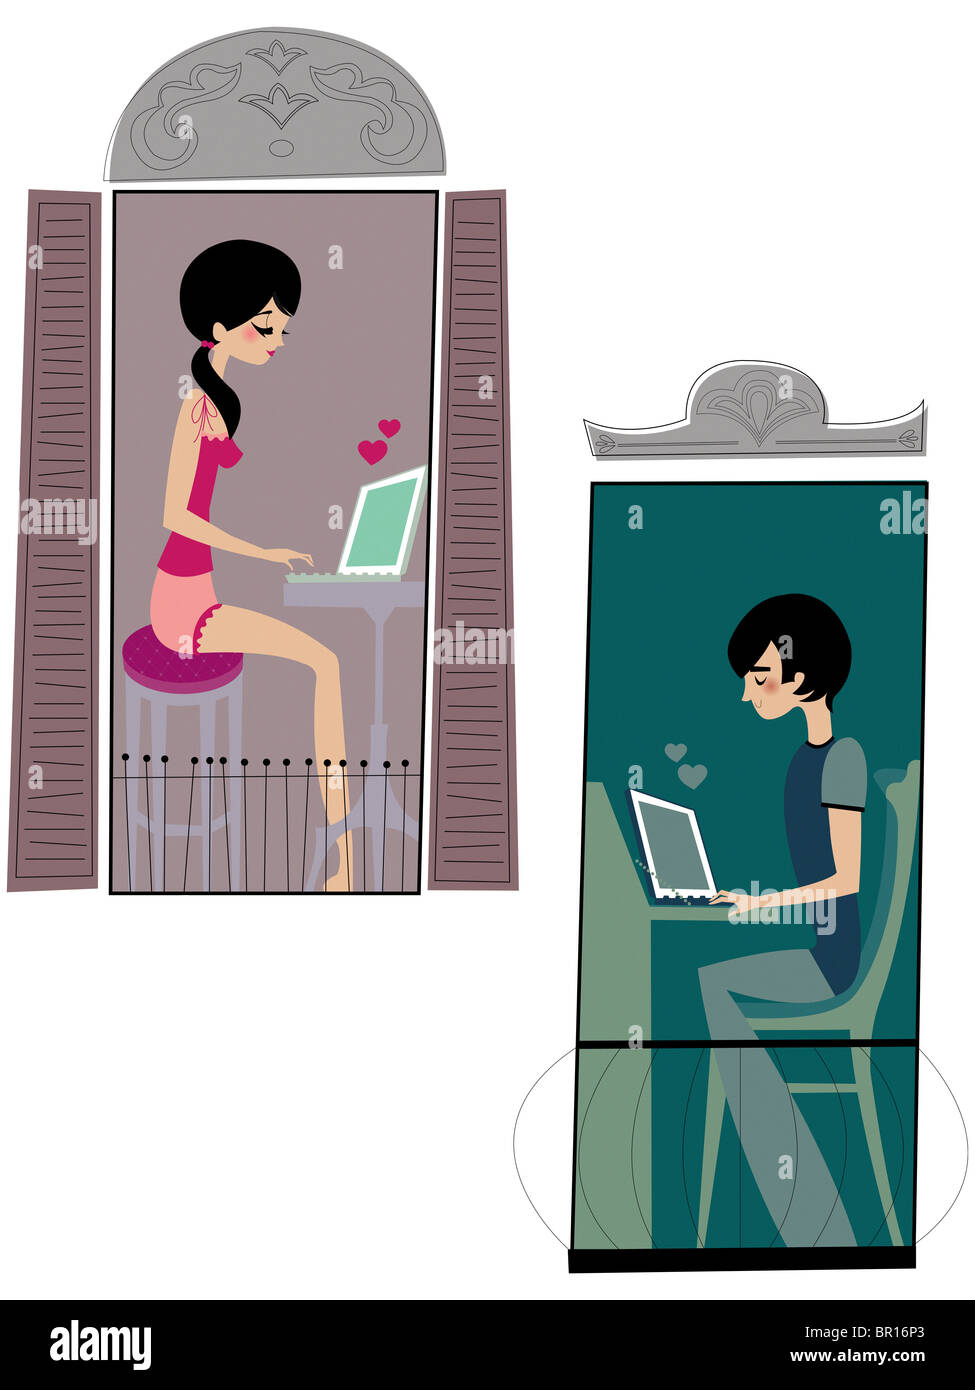 A couple exchanging love letters by e-mail - Stock Image